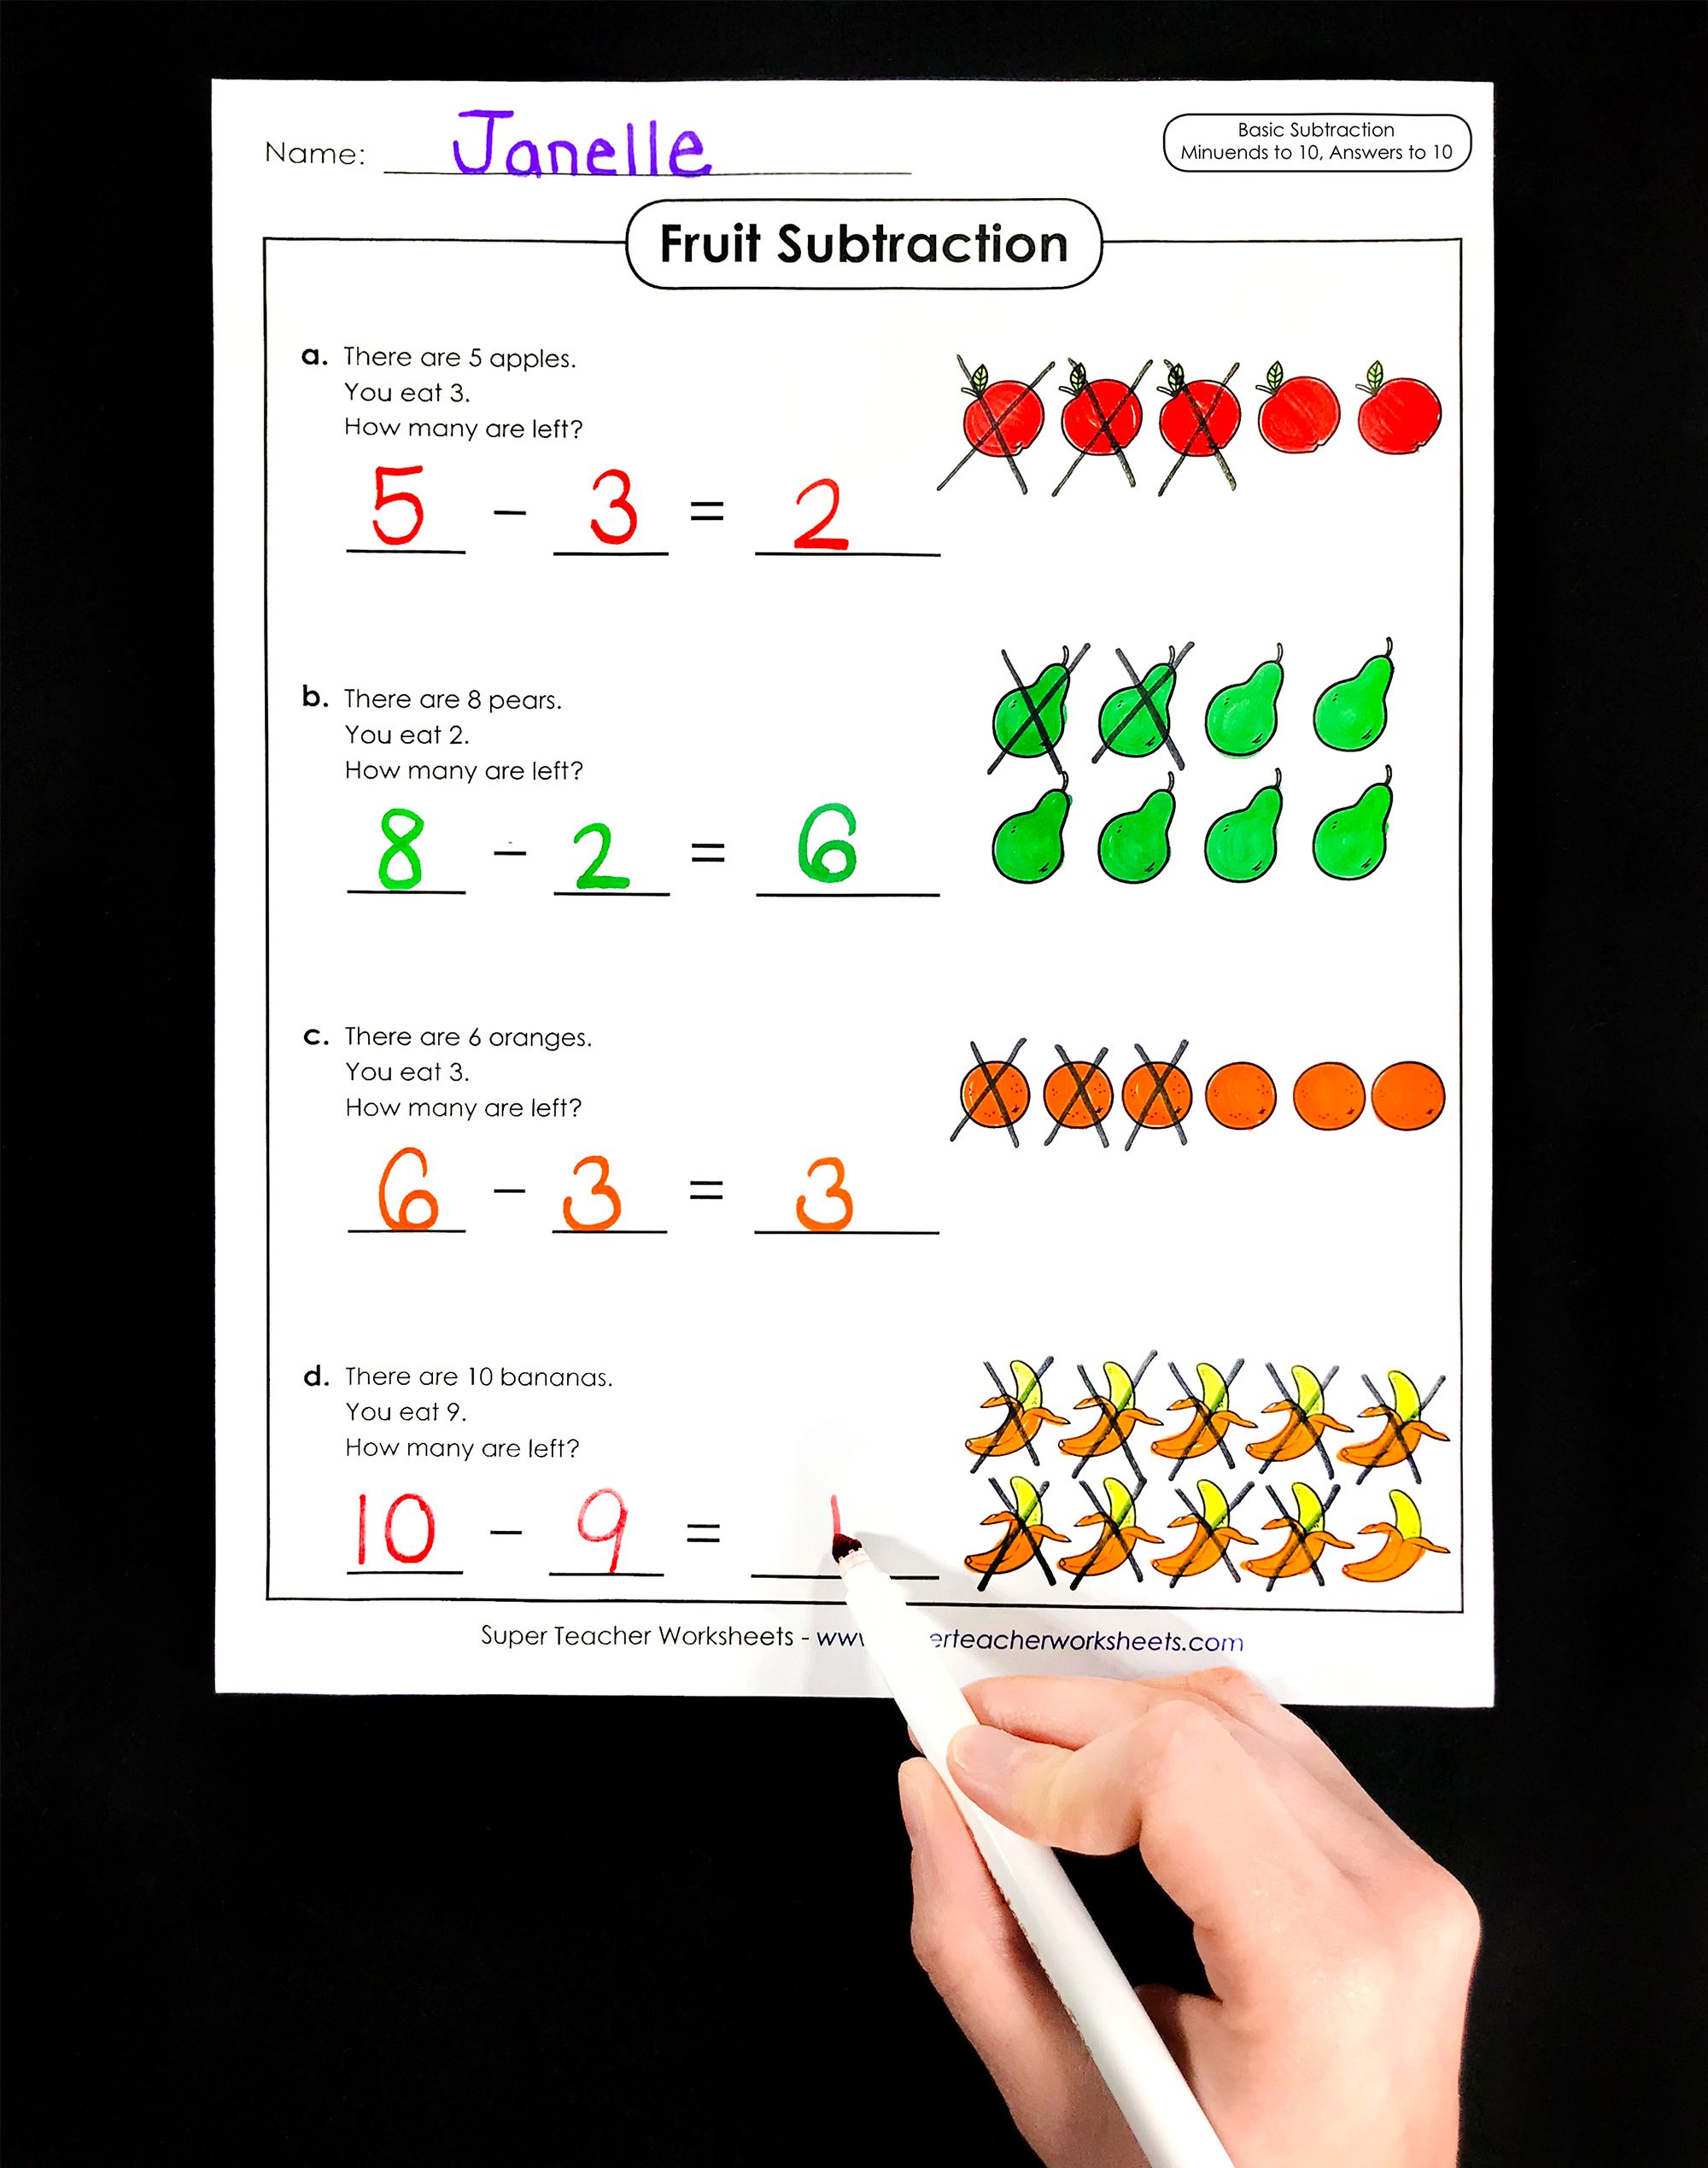 Subtraction Activities For Kids Teacher Worksheets Math Super Teacher Worksheets Subtraction Word Problems